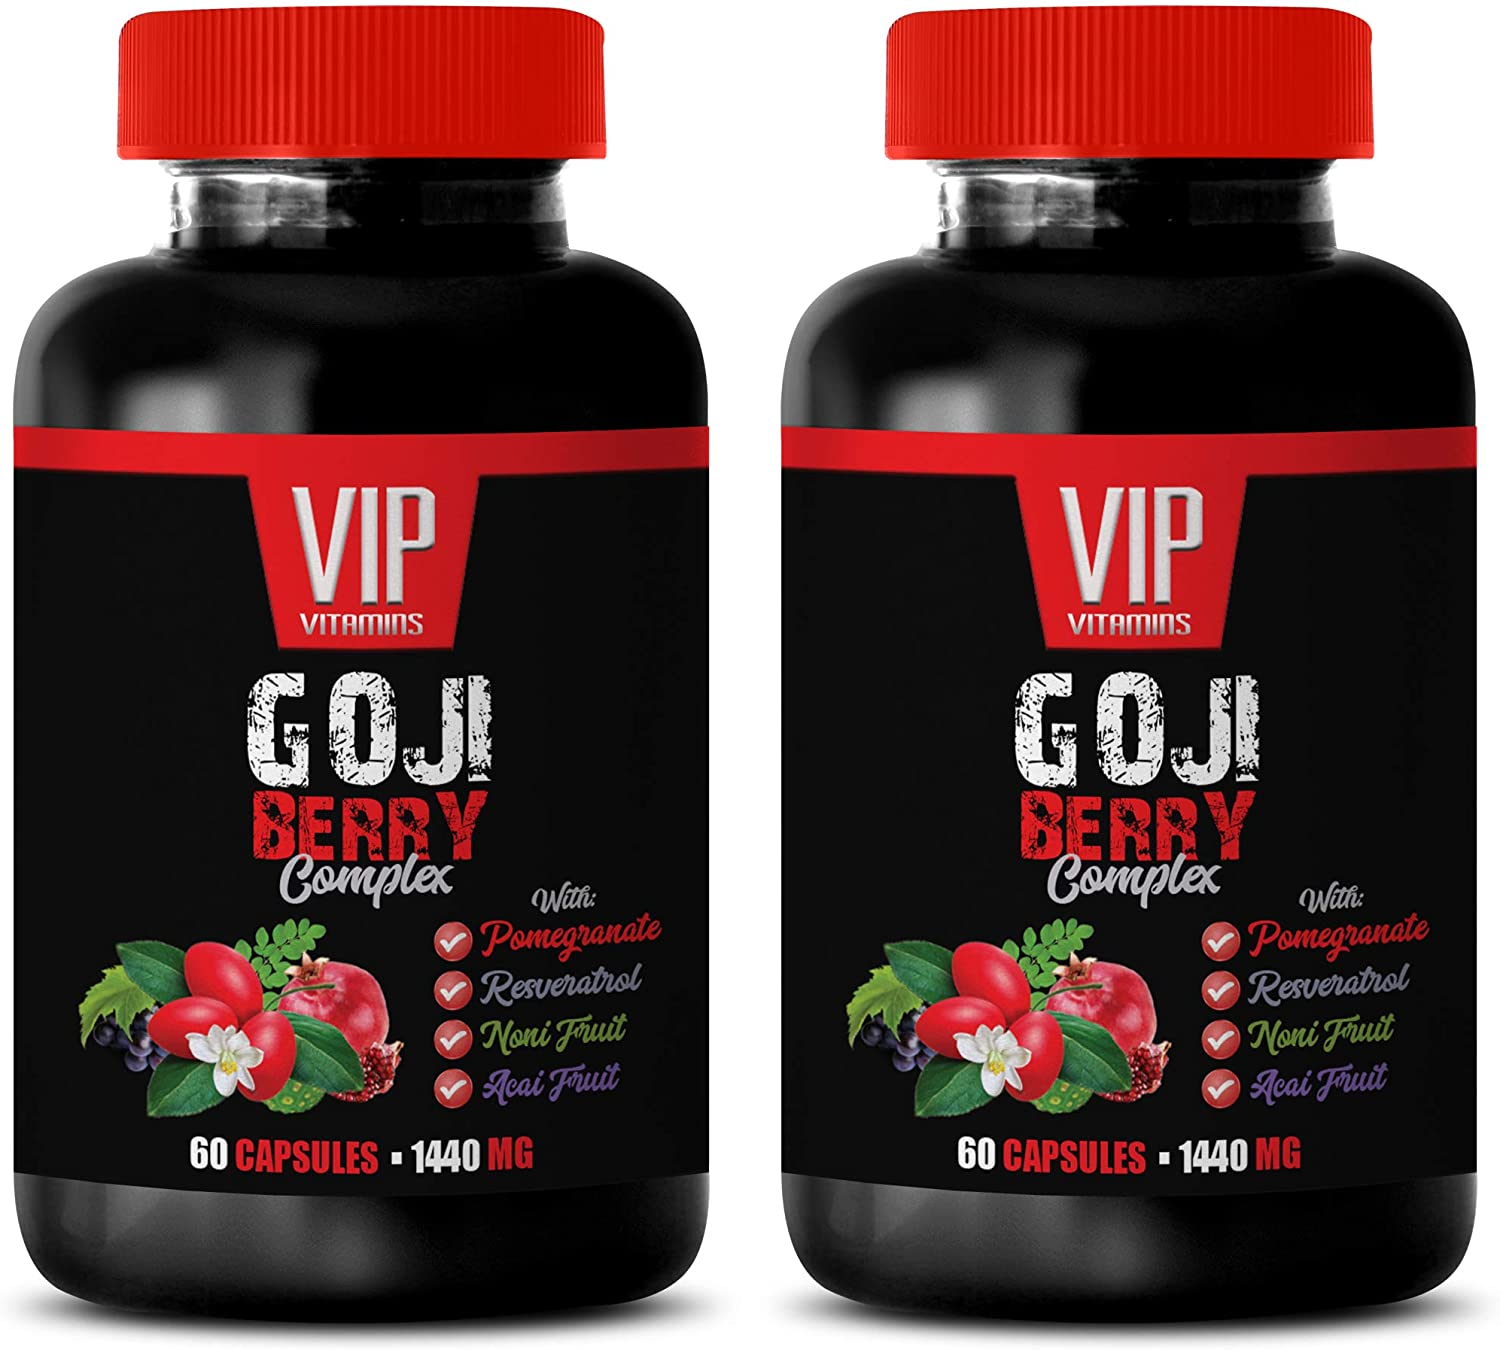 Immune Support Vitamins for Adults - Goji Berry Complex - with Pomegranate, RESVERATROL, NONI, ACAI - Noni Extract Capsules - 2 Bottles 120 Capsules